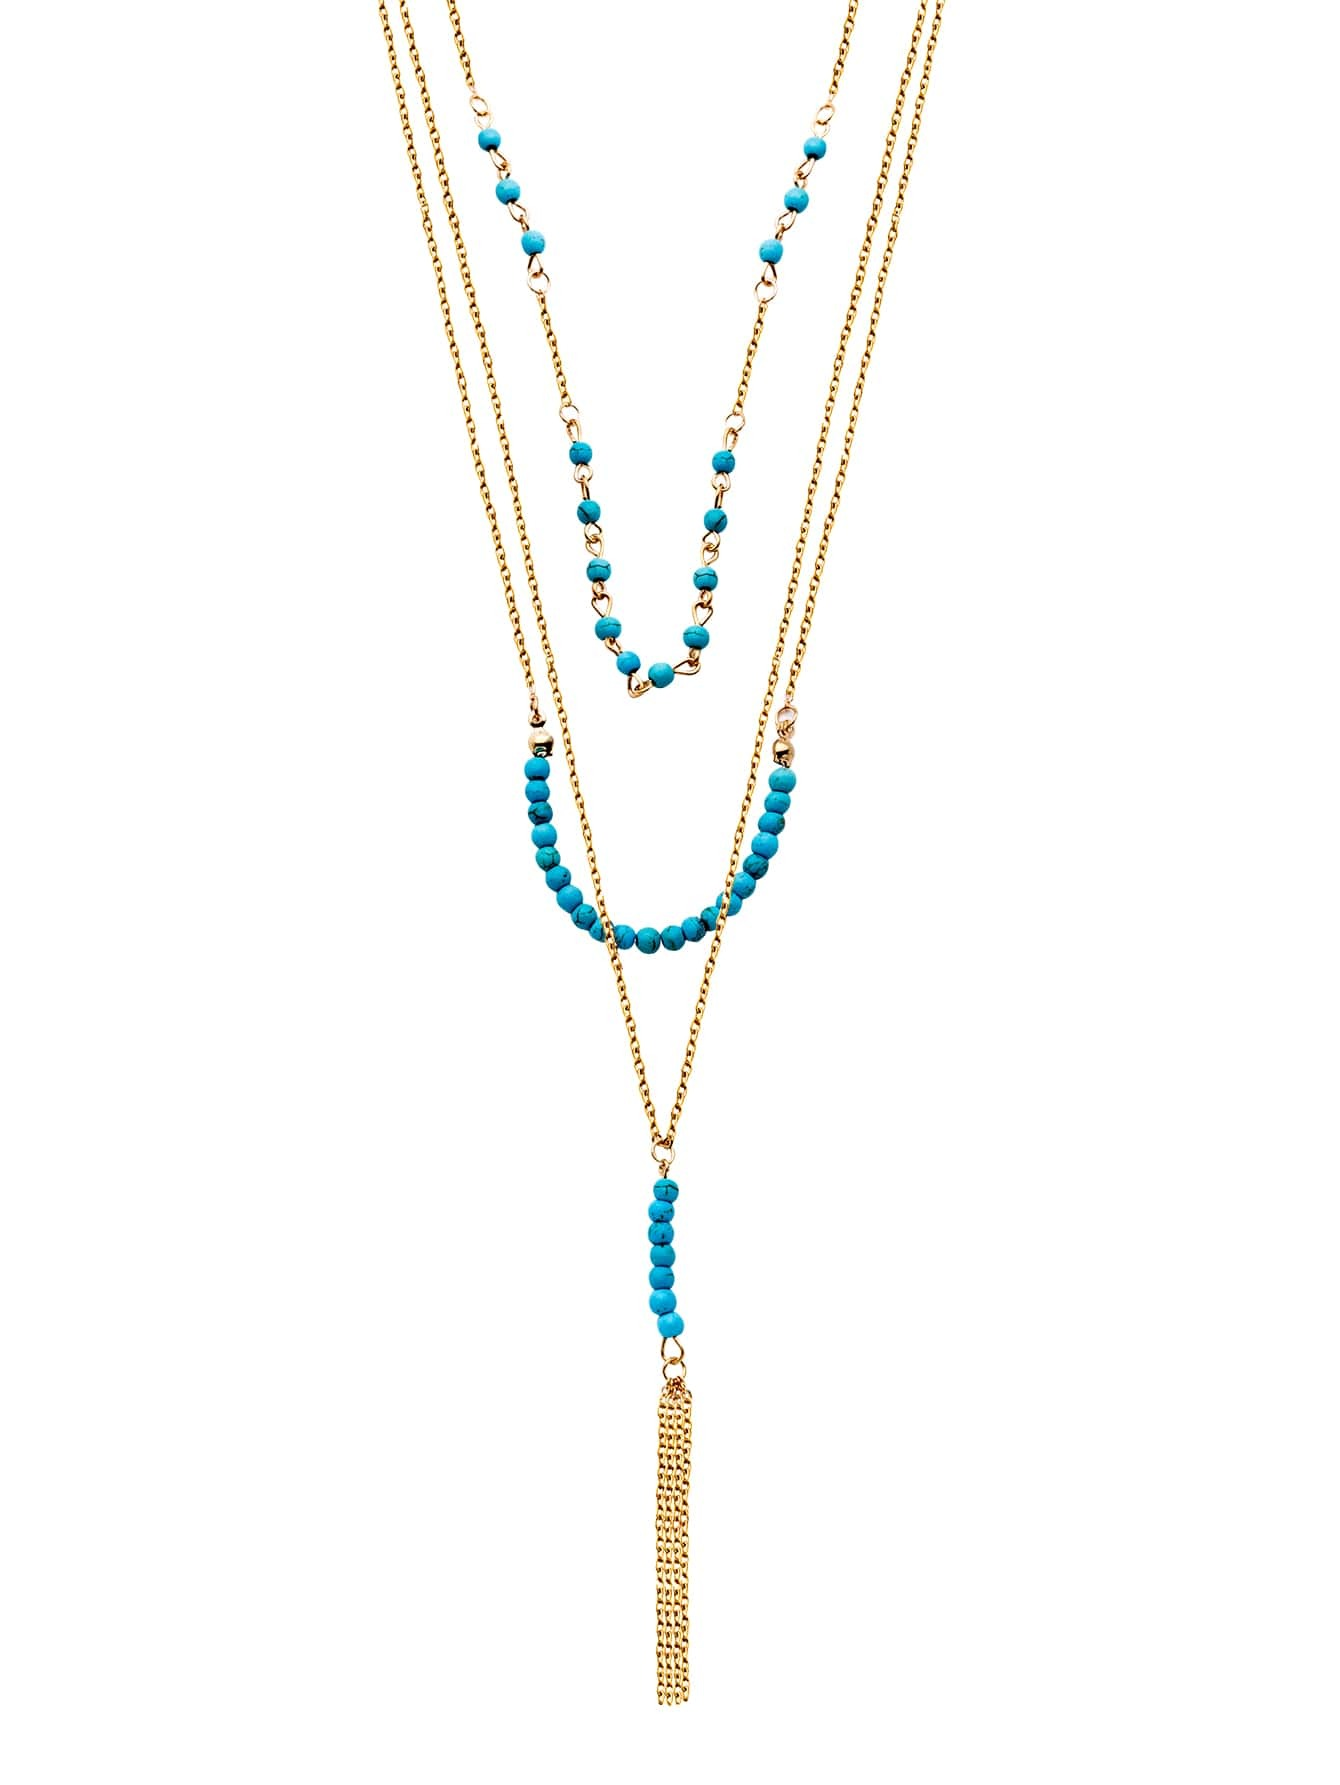 Gold Plated Turquoise Layered Beaded Tassel NecklaceGold Plated Turquoise Layered Beaded Tassel Necklace<br><br>color: Gold<br>size: None